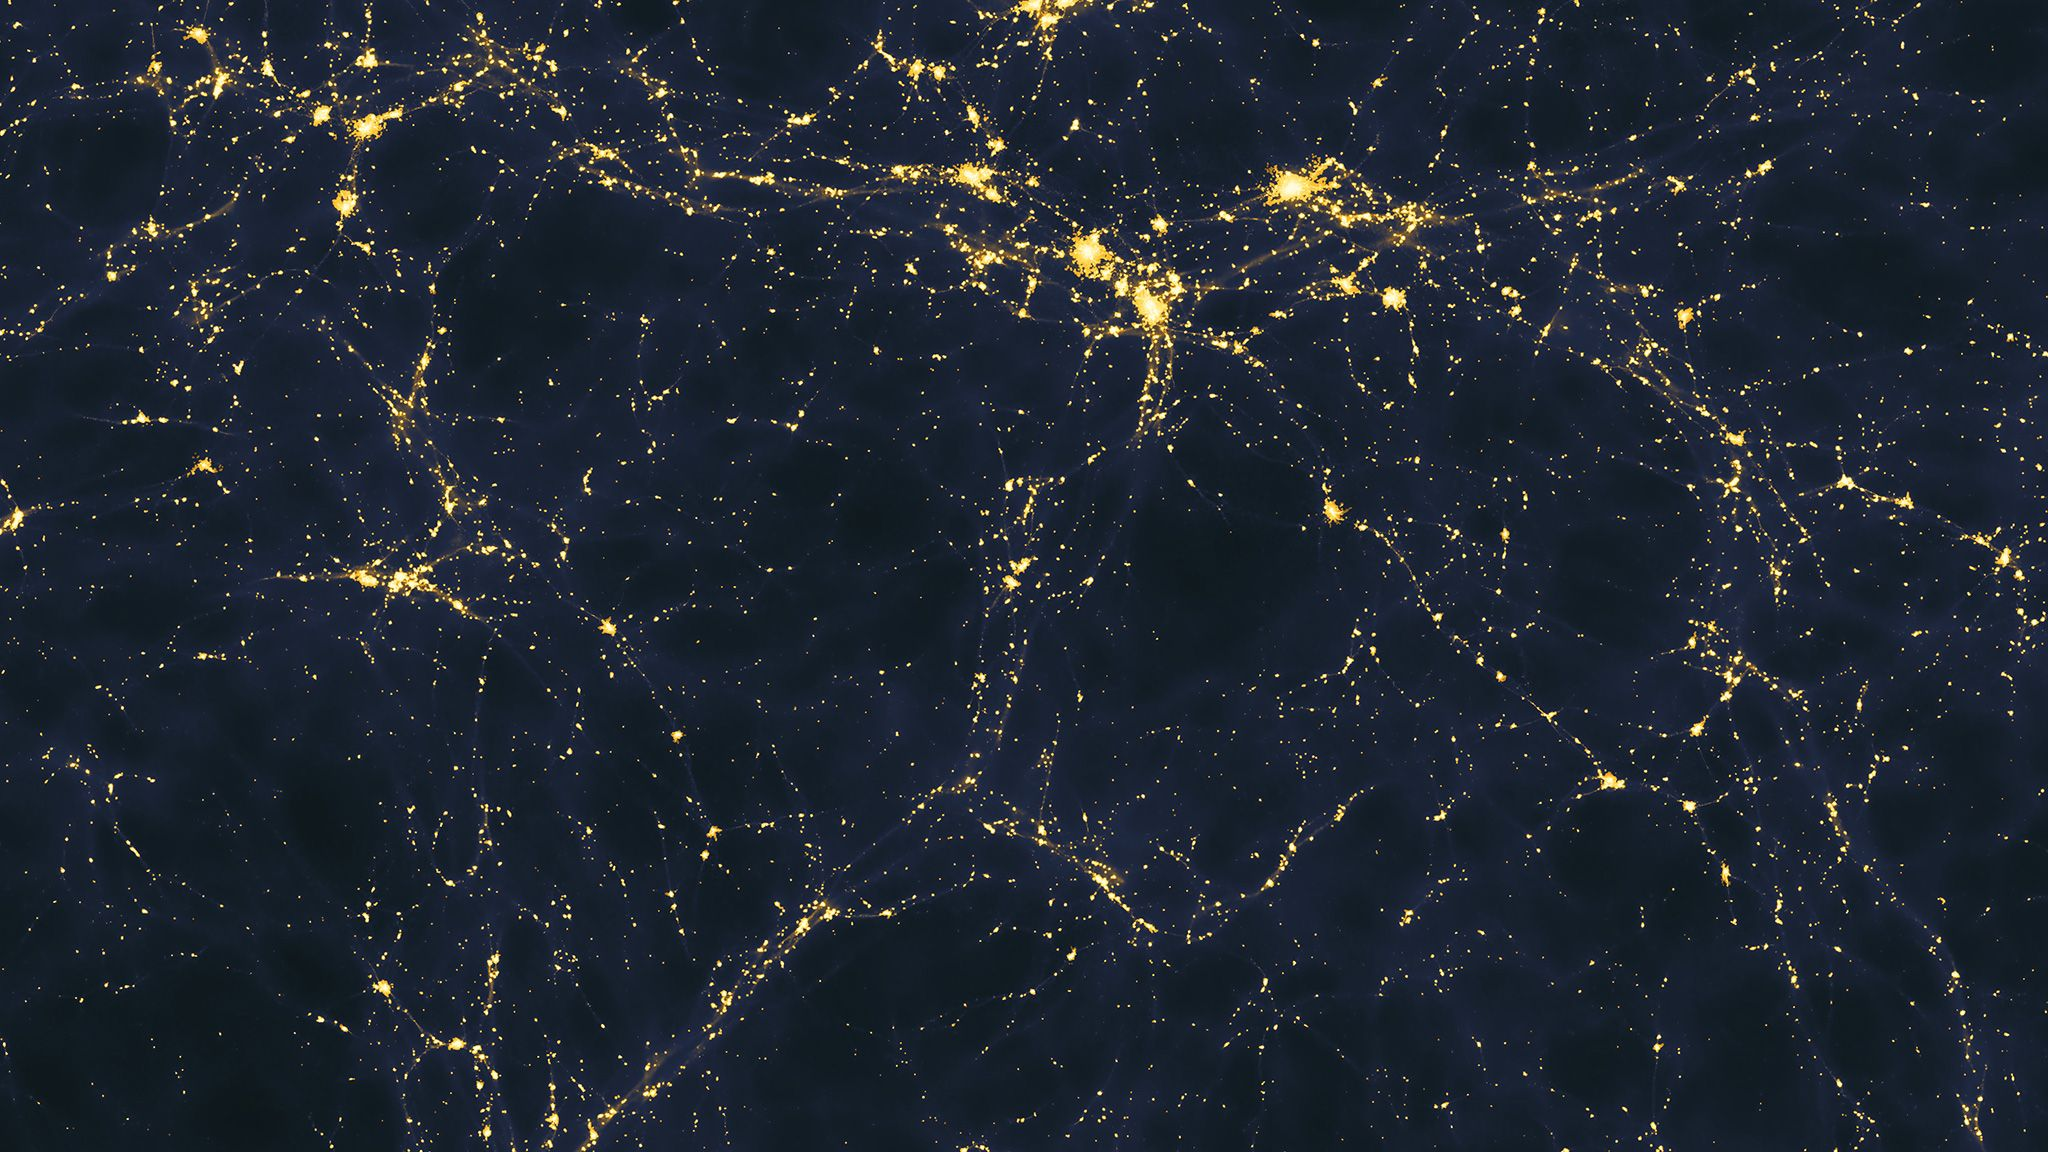 BOSS Supercluster Is So Big It Could Rewrite Cosmological